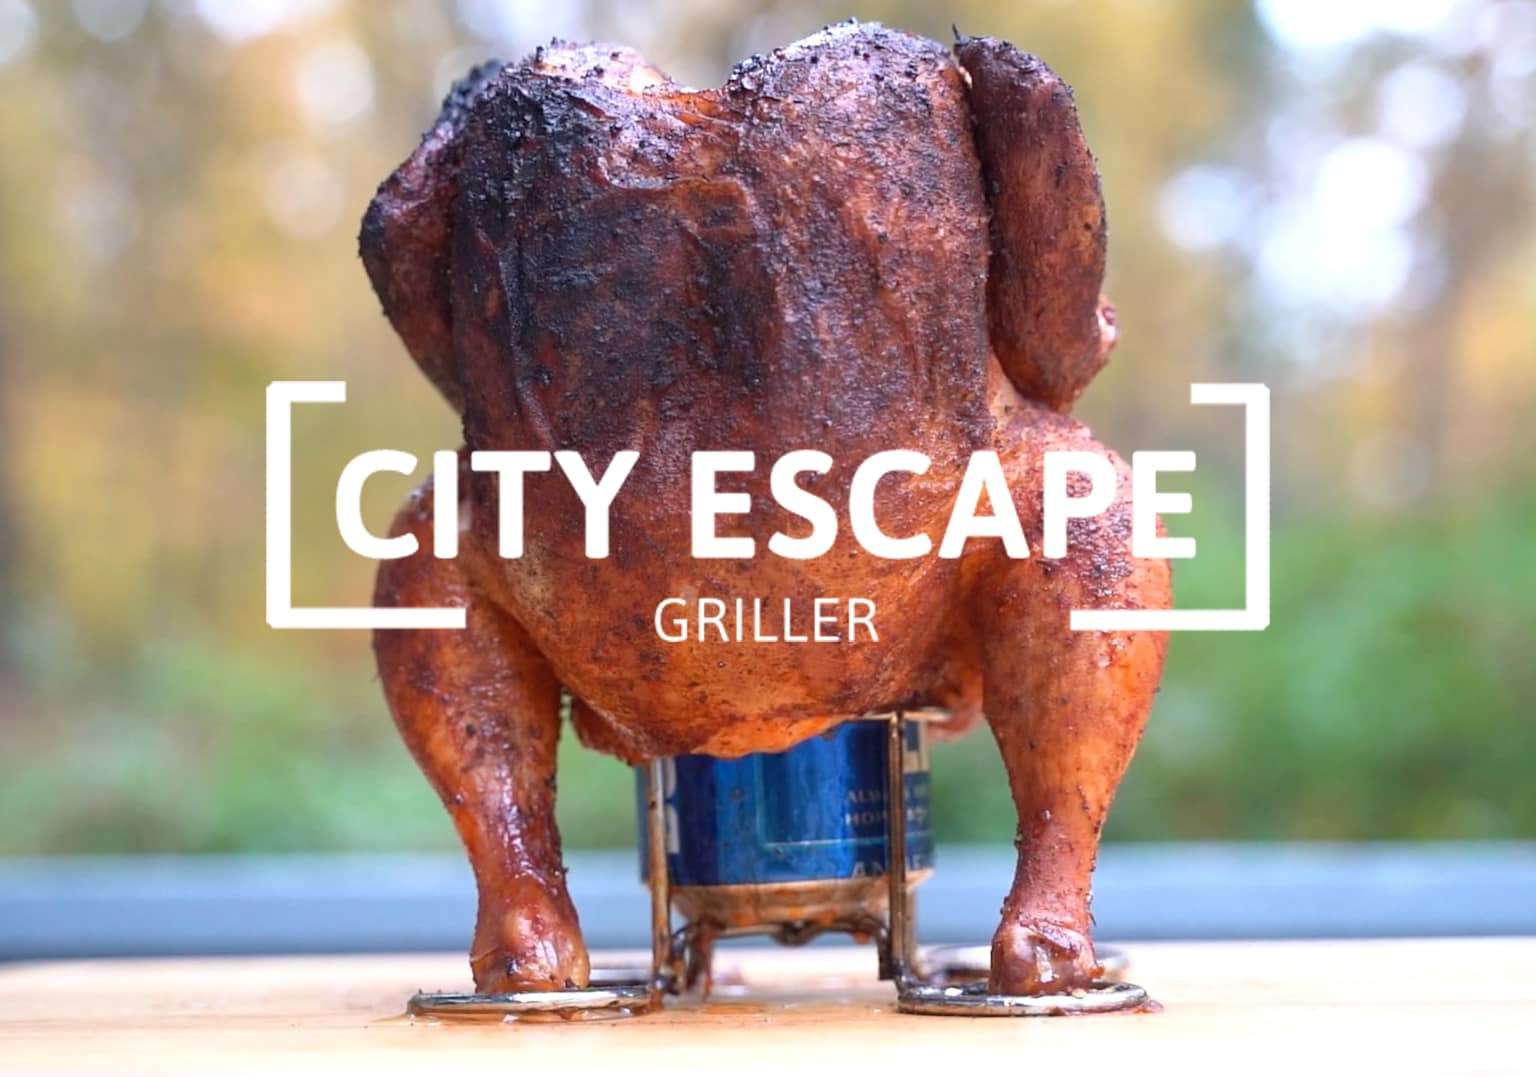 City Escape Griller: YouTube Channel